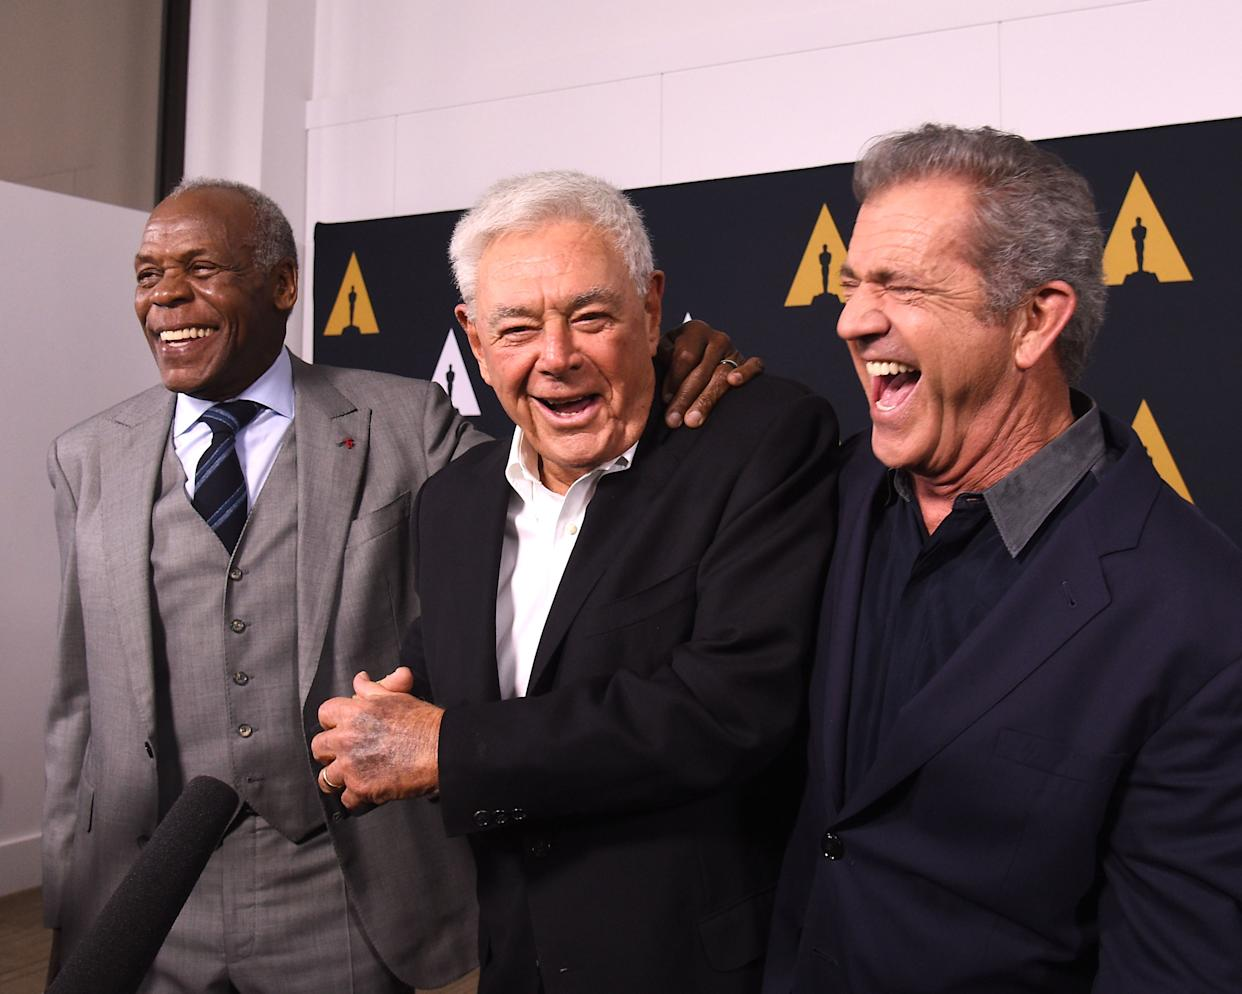 BEVERLY HILLS, CA - JUNE 07:  (L-R) Danny Glover, Richard Donner and Mel Gibson arrive at The Academy Celebrates Filmmaker Richard Donner at Samuel Goldwyn Theater on June 7, 2017 in Beverly Hills, California.  (Photo by Joshua Blanchard/Getty Images)